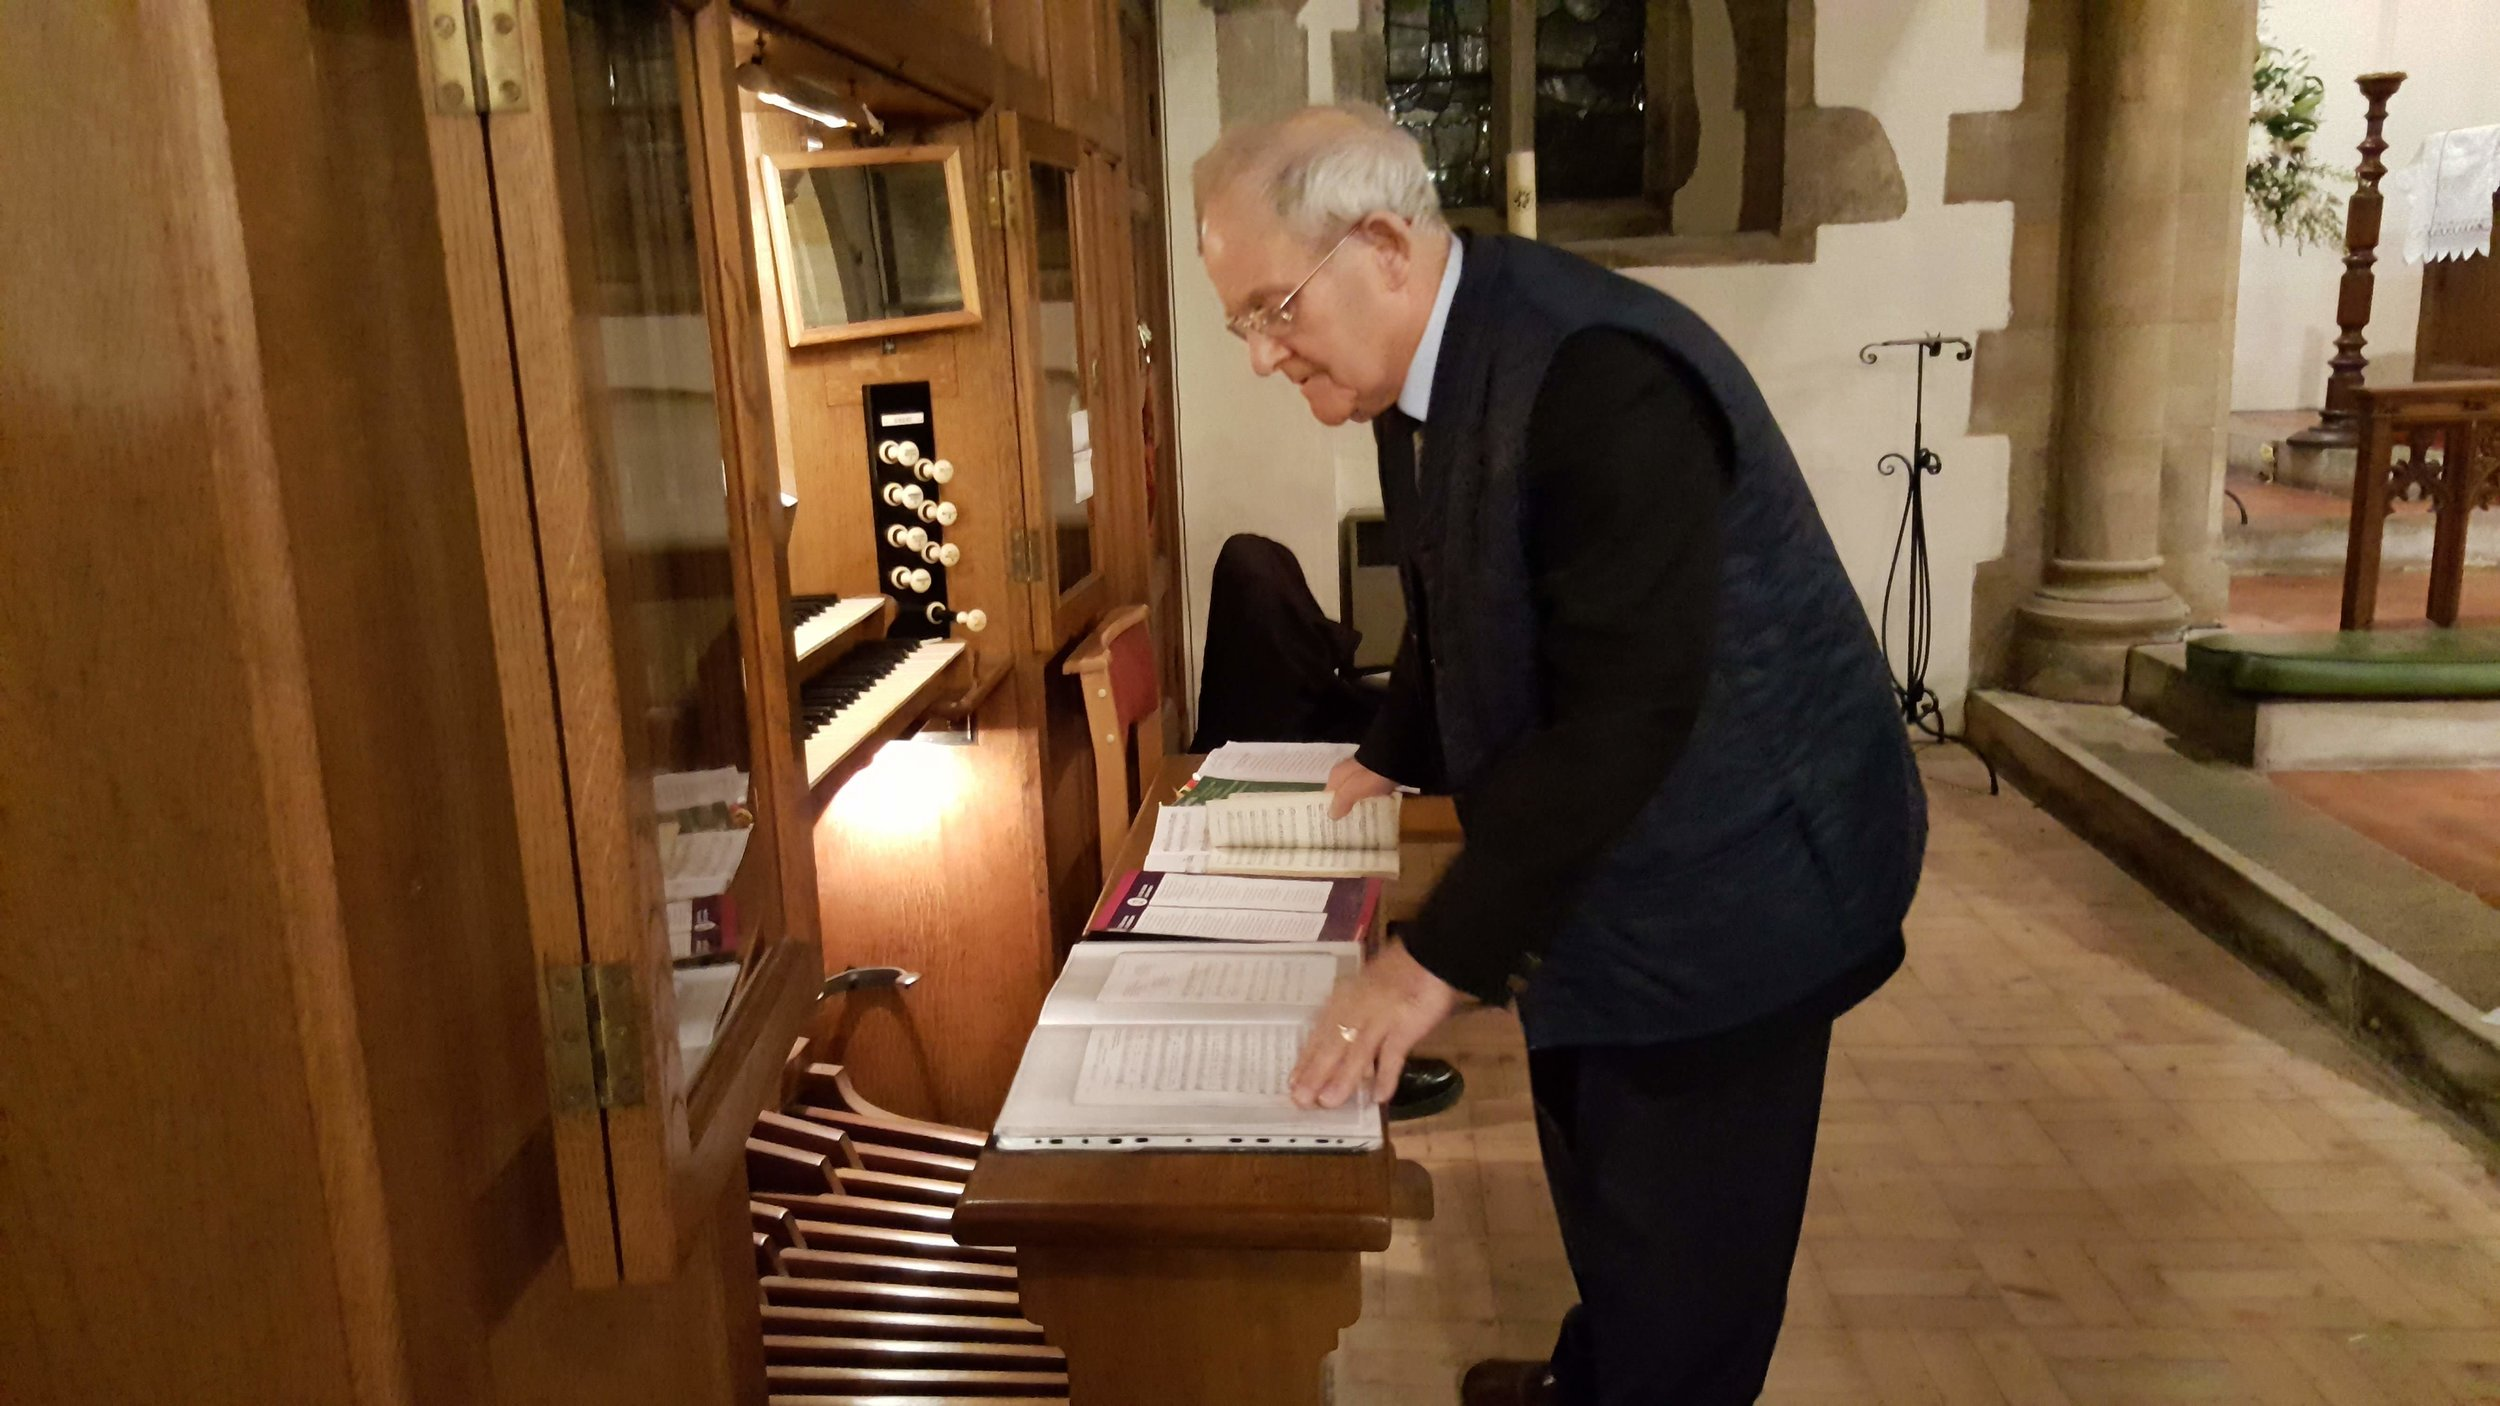 Organist, Jack Young on the Harrison & Harrison organ